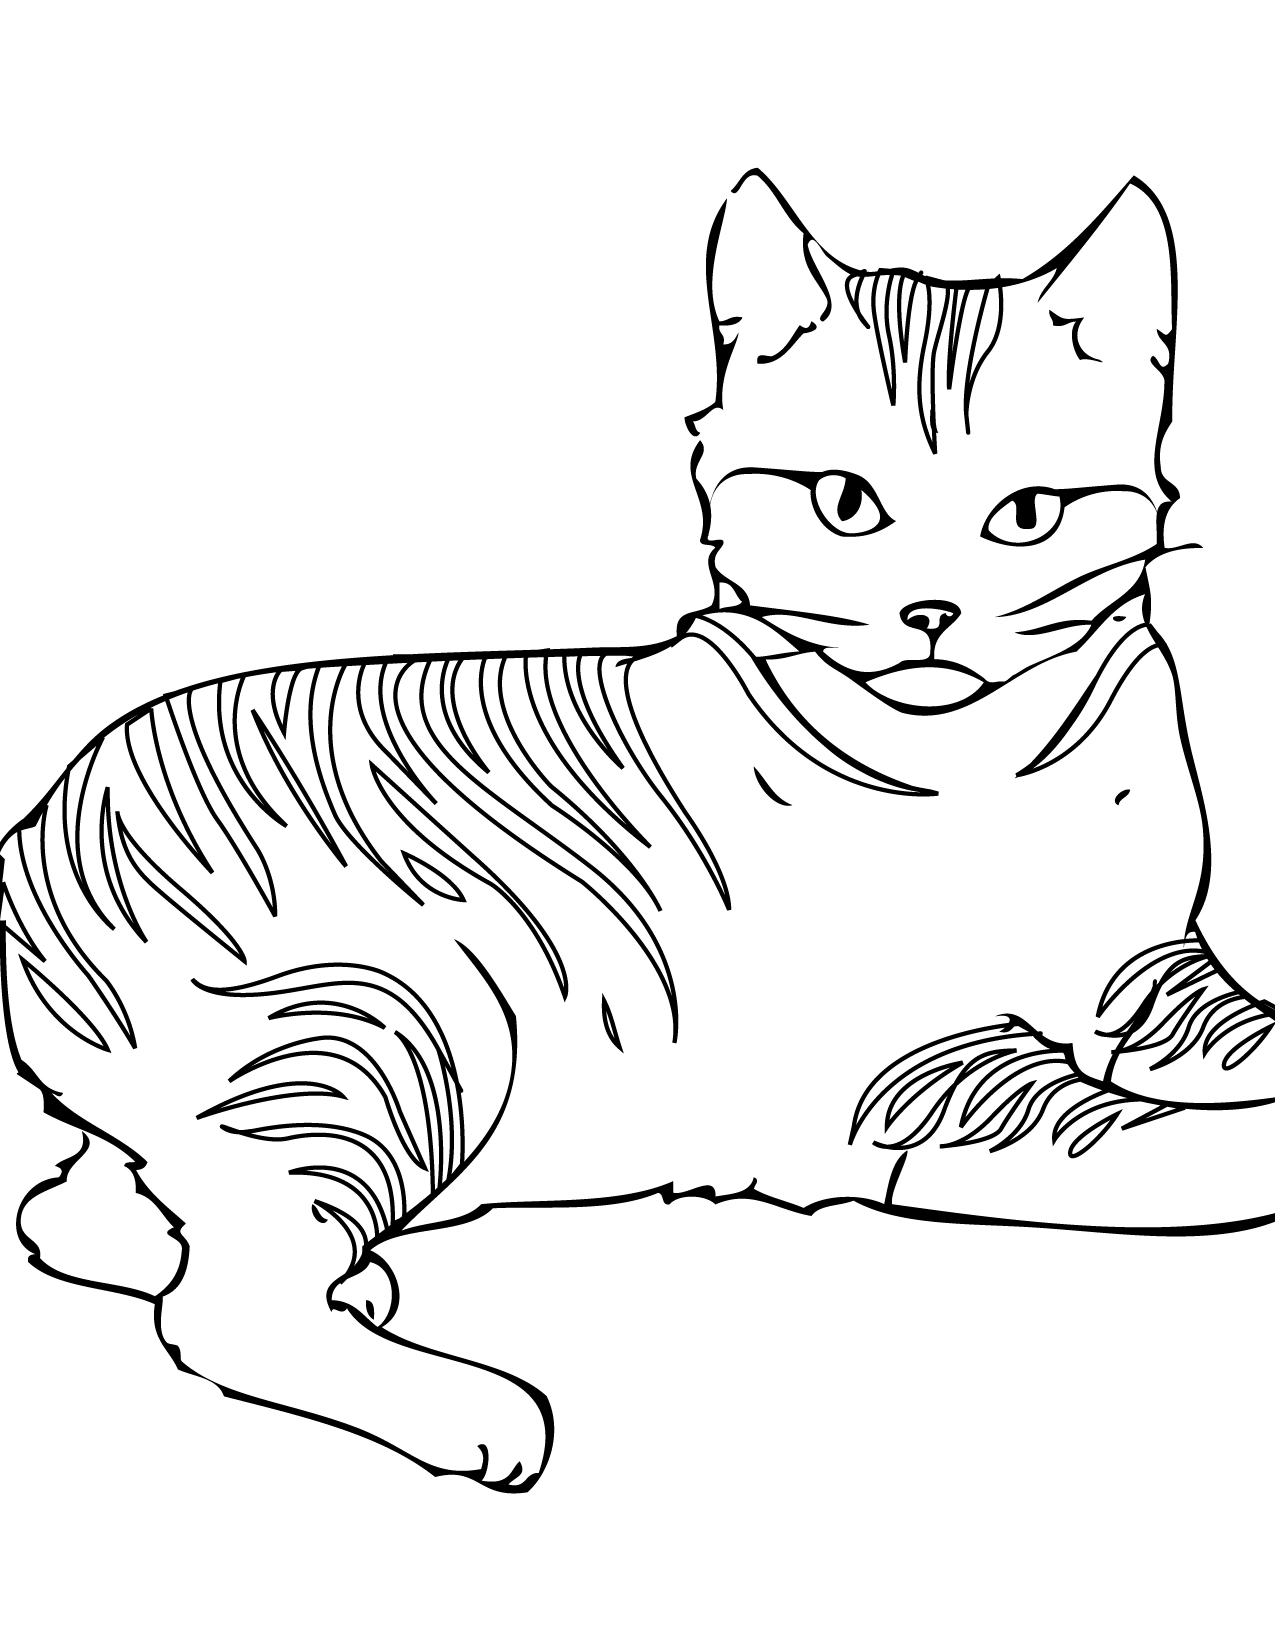 cat coloring pictures free printable cat coloring pages for kids cat pictures coloring